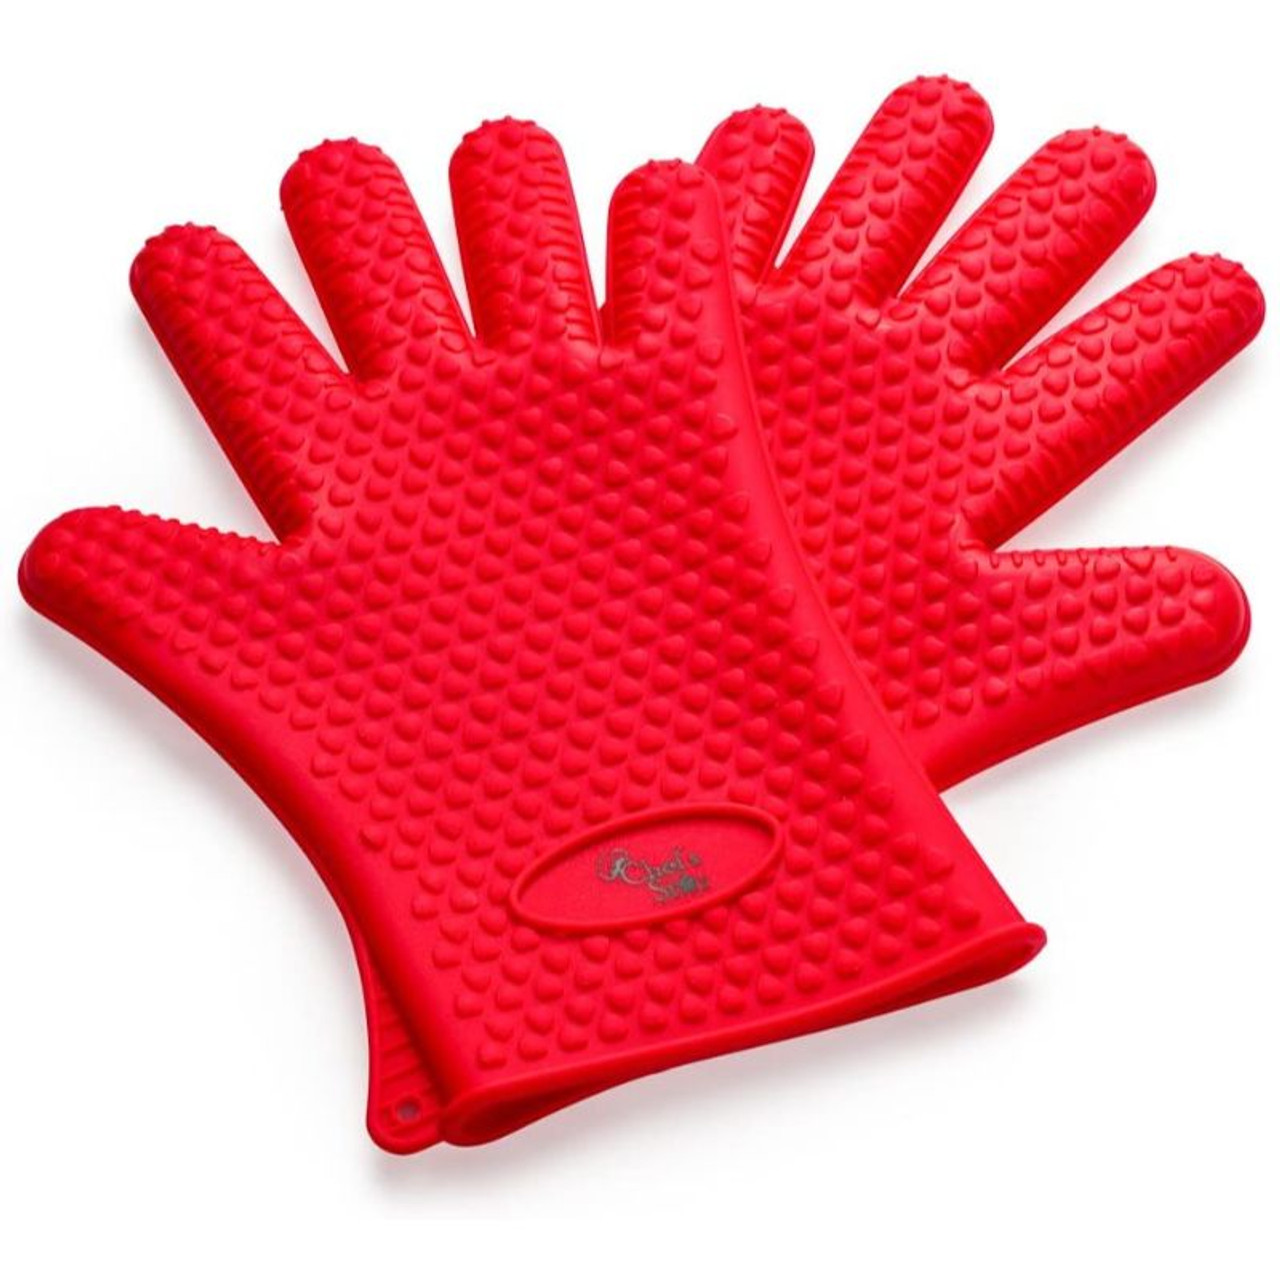 Chef's Star Cooking Gloves Heat and Cold Resistant, BBQ, Grill, and Oven Safe